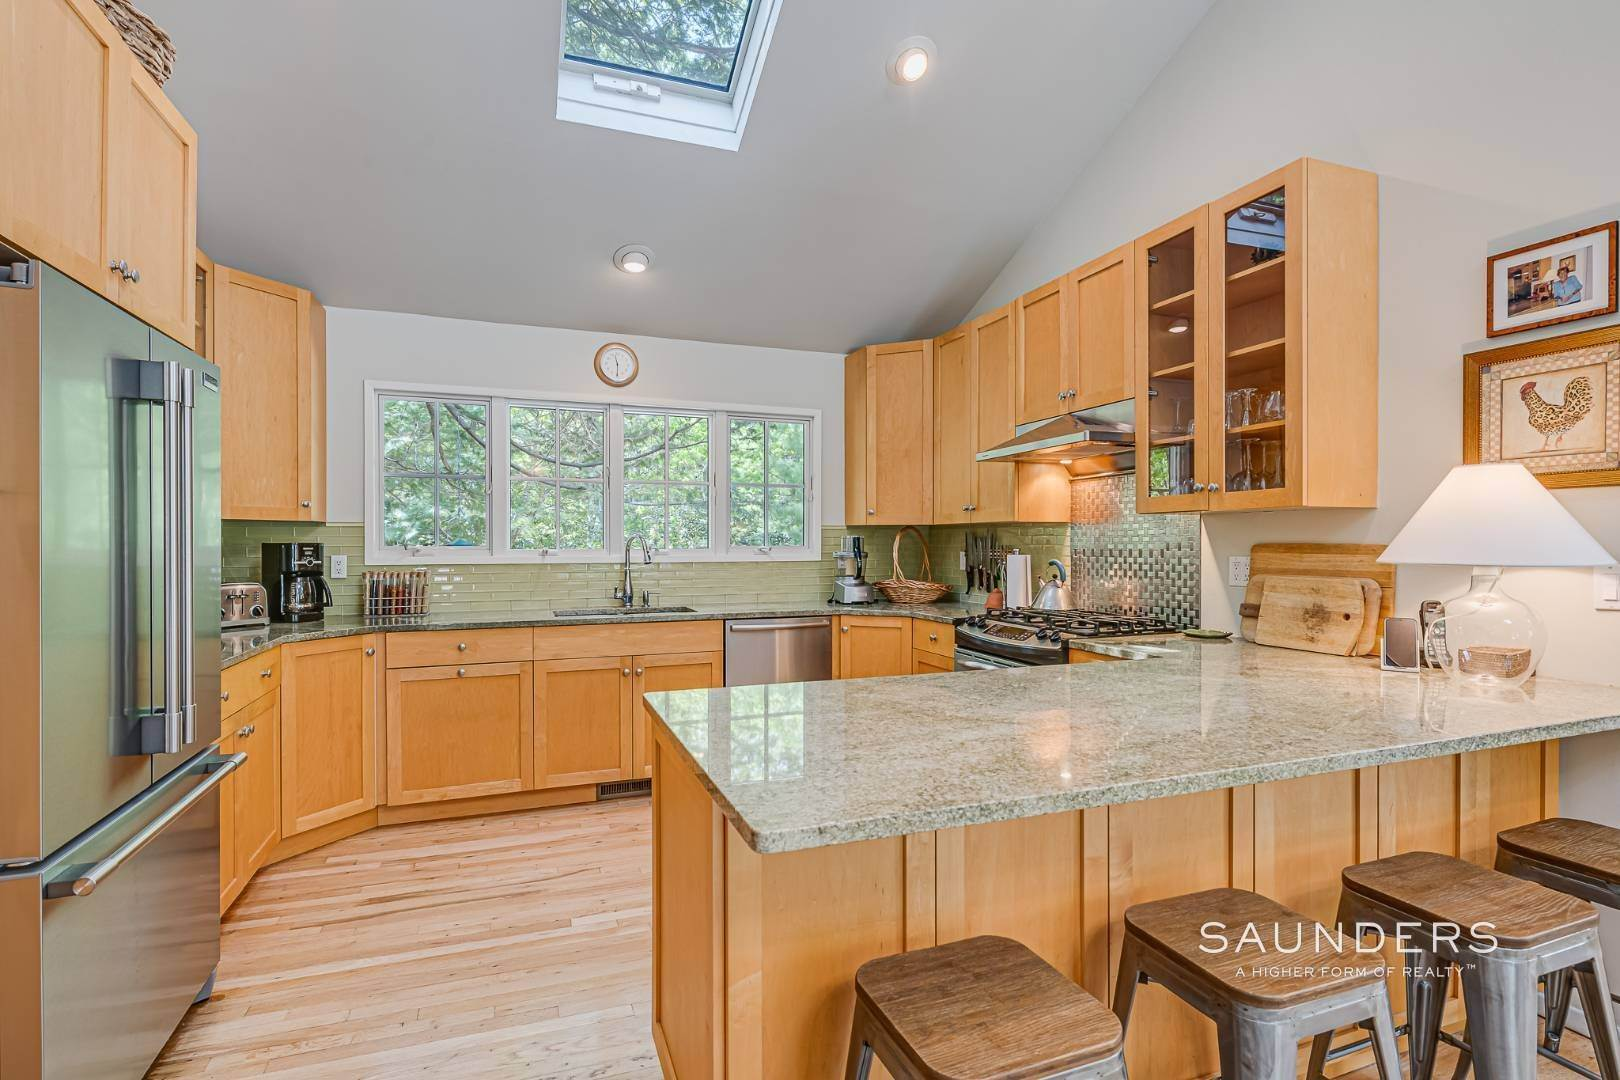 10. Single Family Homes for Sale at Beach House By The Bay 31 Long Woods Lane, East Hampton, East Hampton Town, NY 11937